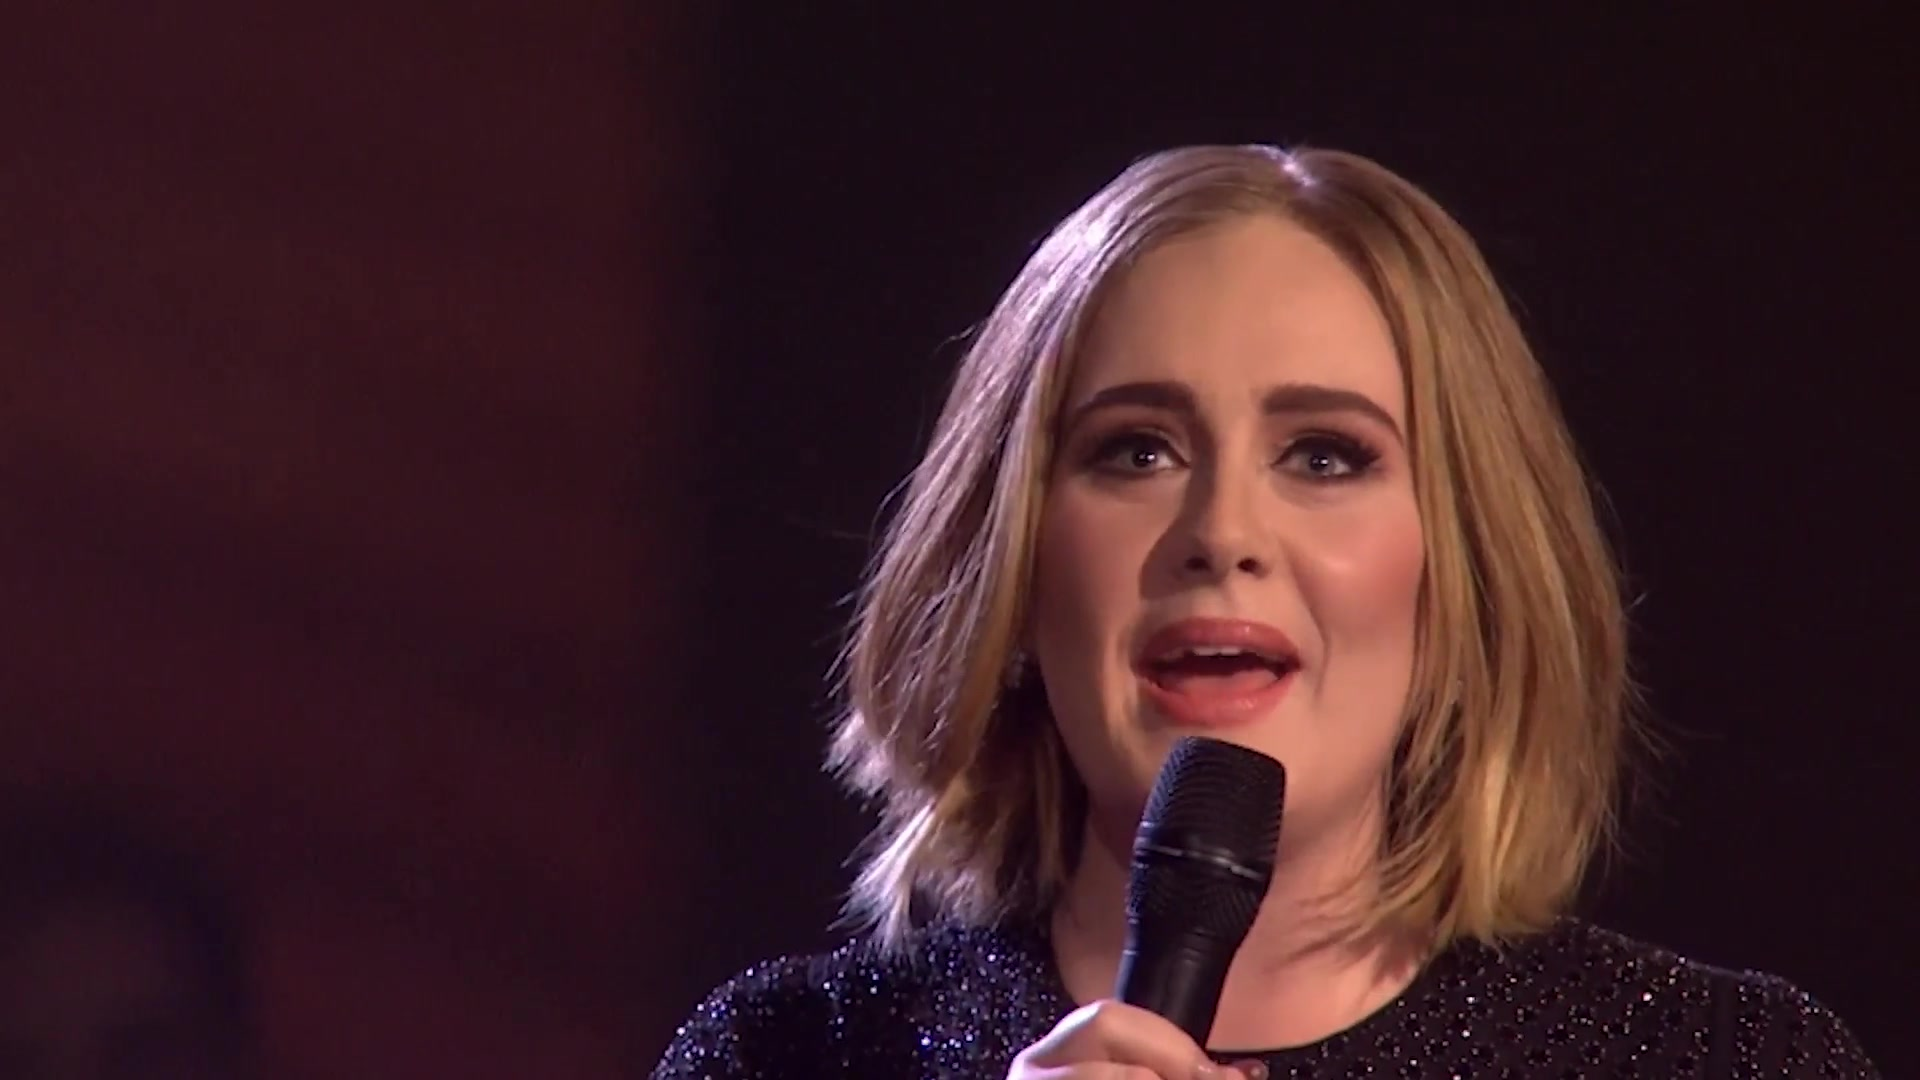 Adele Shows Off TWERKING Skills On Stage & Upgrades Fans' Seats